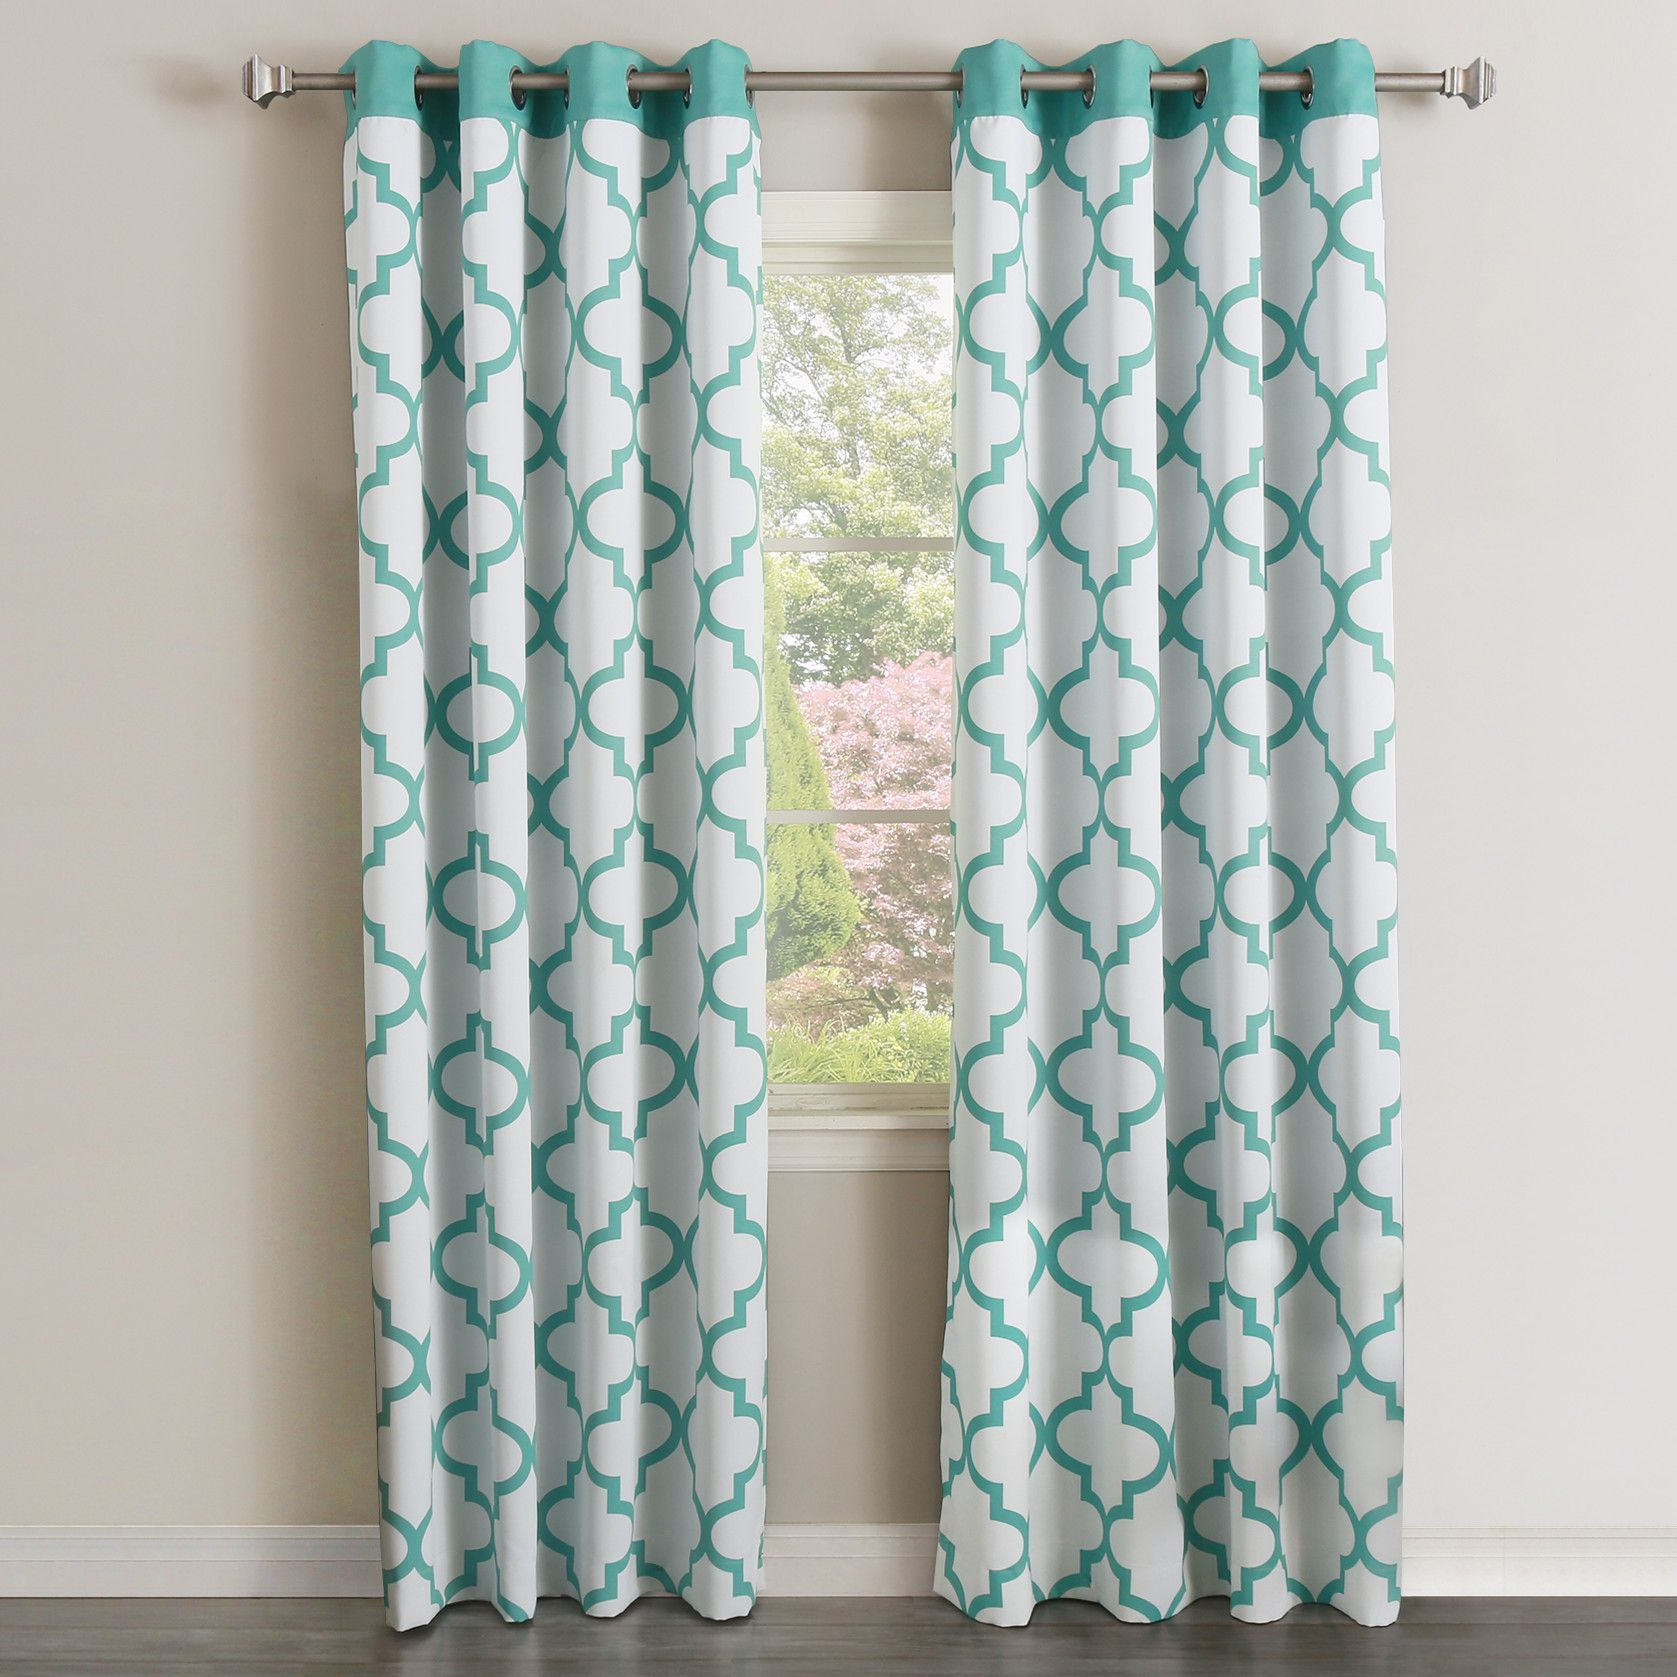 Moroccan curtain panel products pinterest moroccan curtains